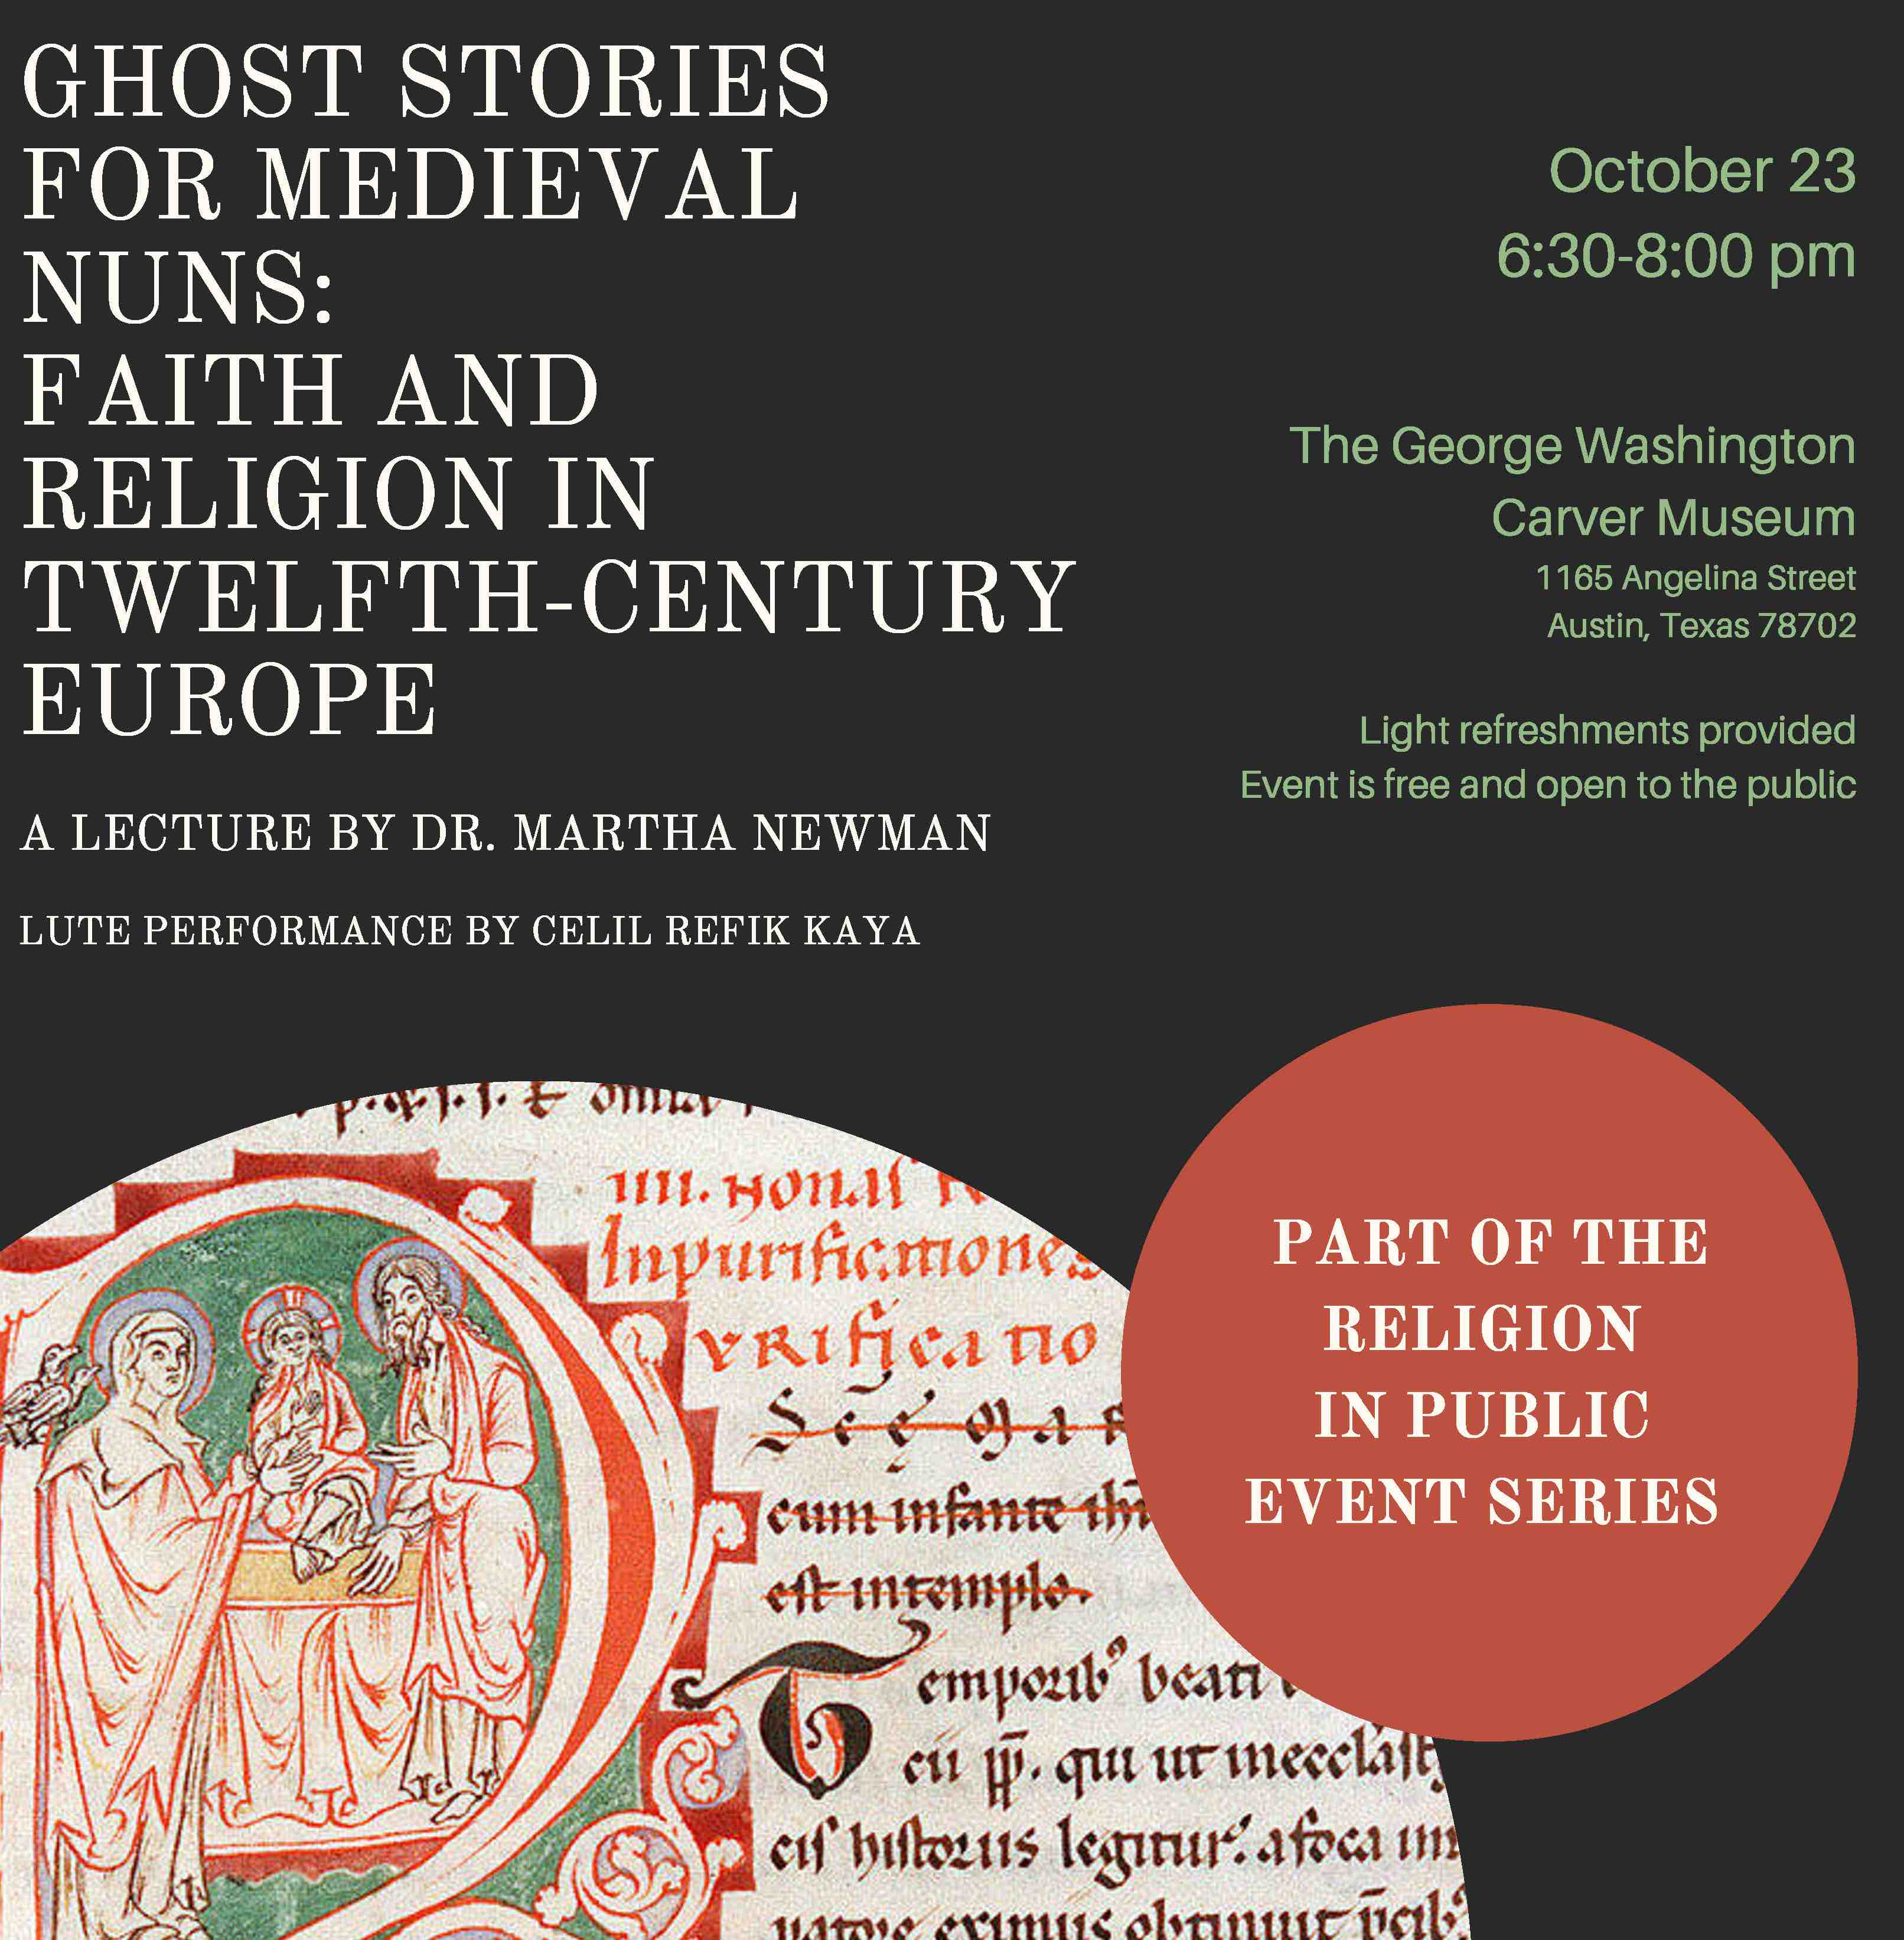 Dr. Martha Newman Gives Talk on Ghost Stories for Medieval Nuns